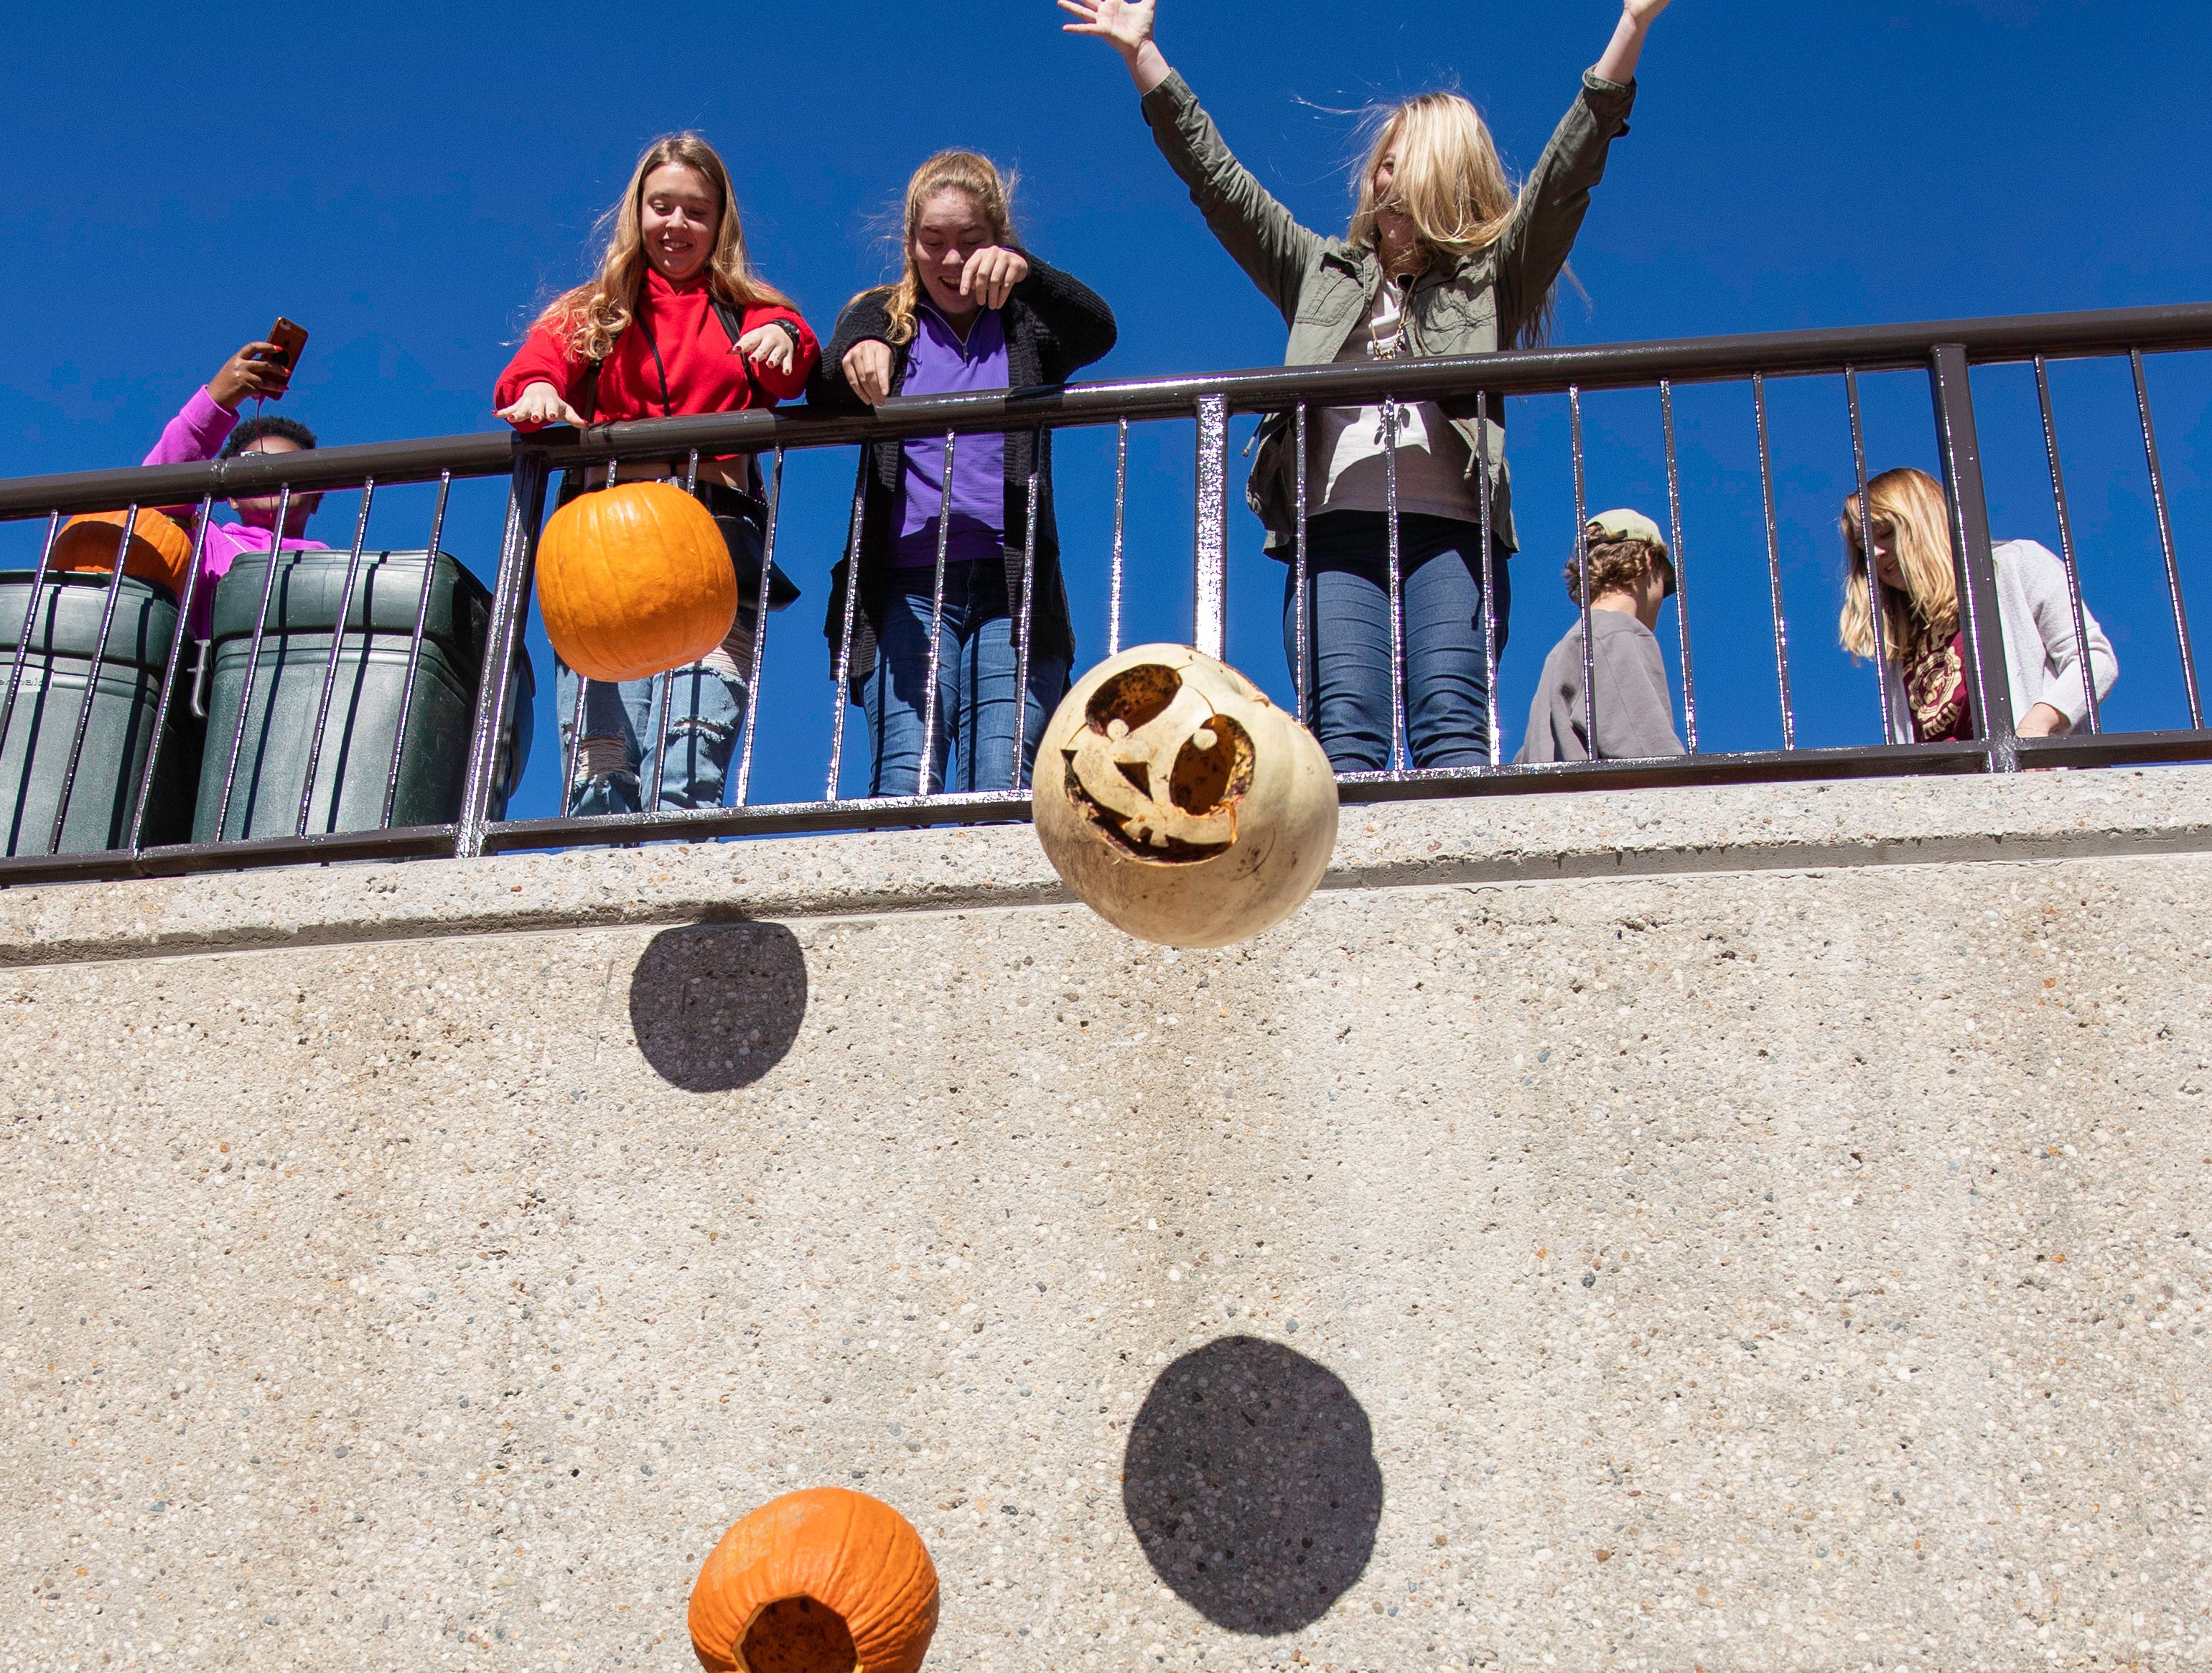 University of Louisville Sustainability program hosted second pumpkin smash near the Student Activities Center, Tuesday, Nov. 6, 2018 in Louisville Ky.